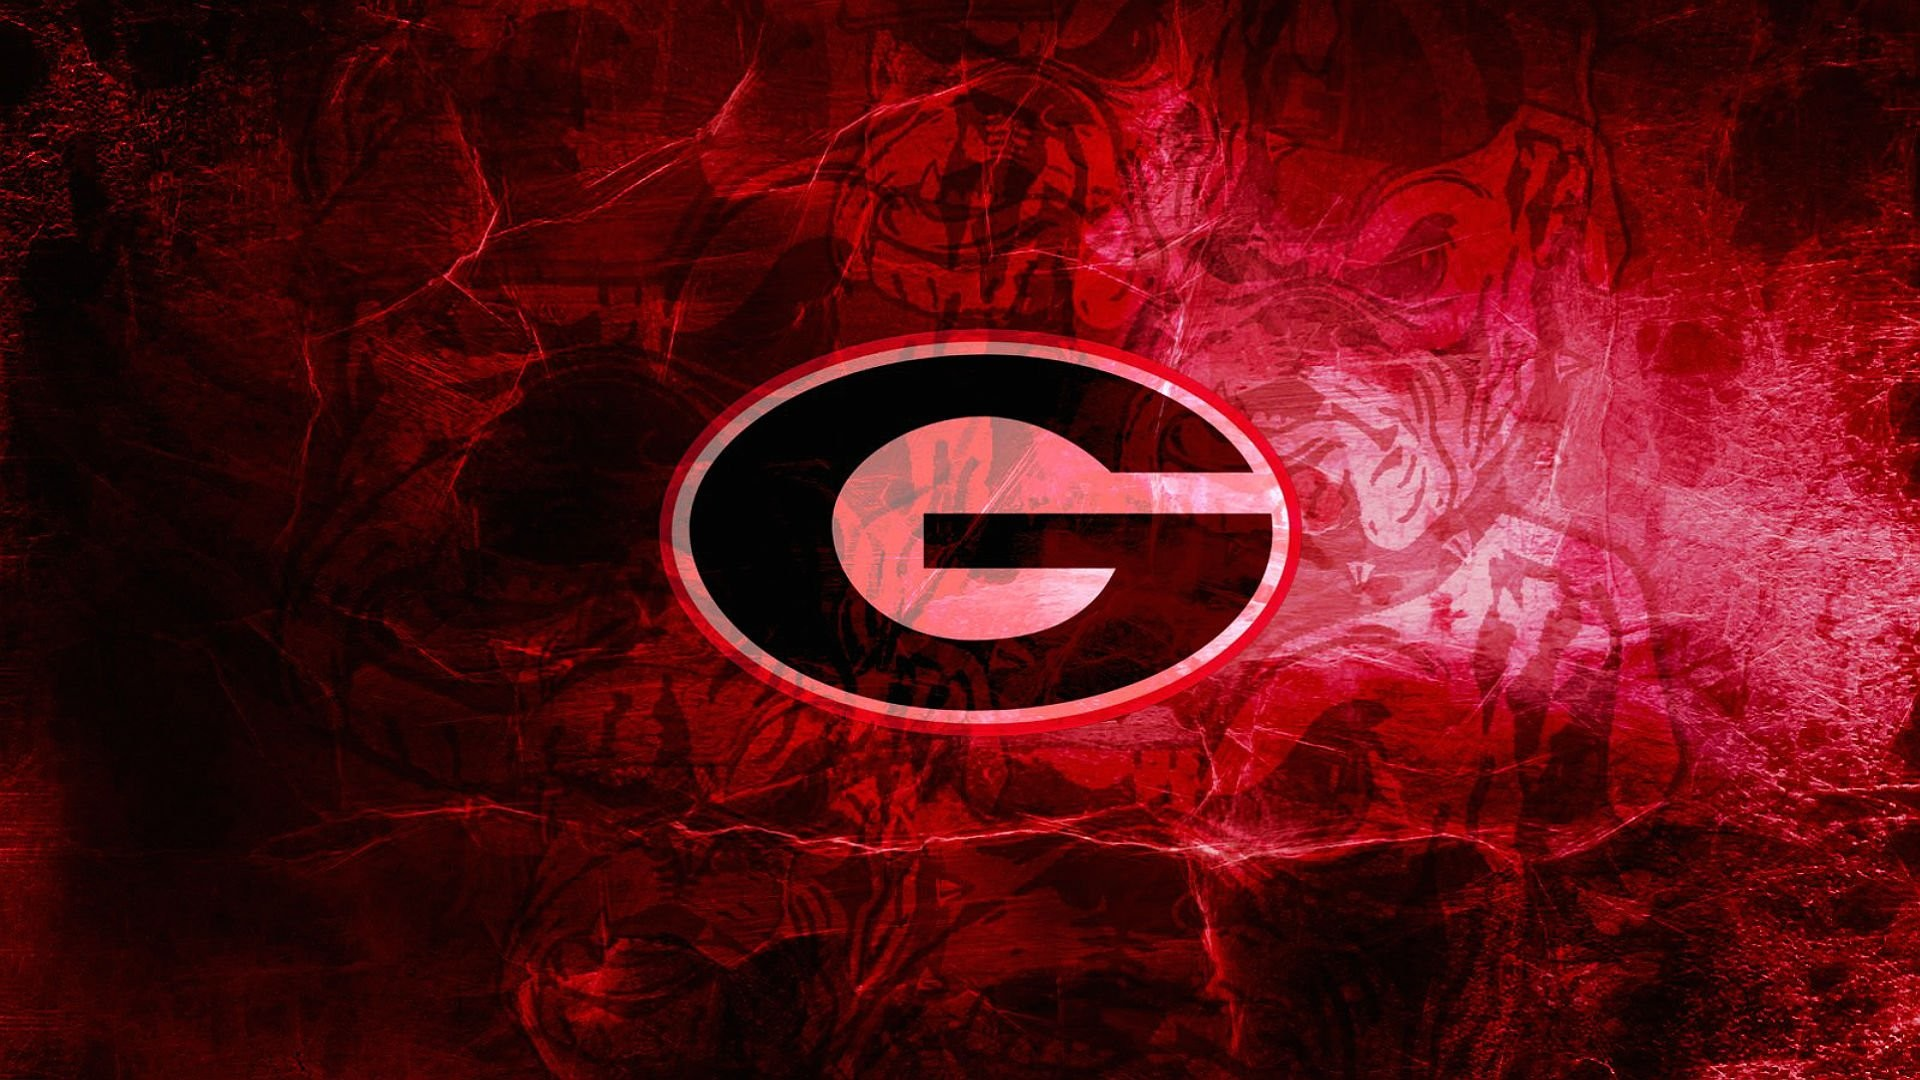 Football Screensavers And Wallpaper: College Football Screensavers Wallpaper (69+ Images